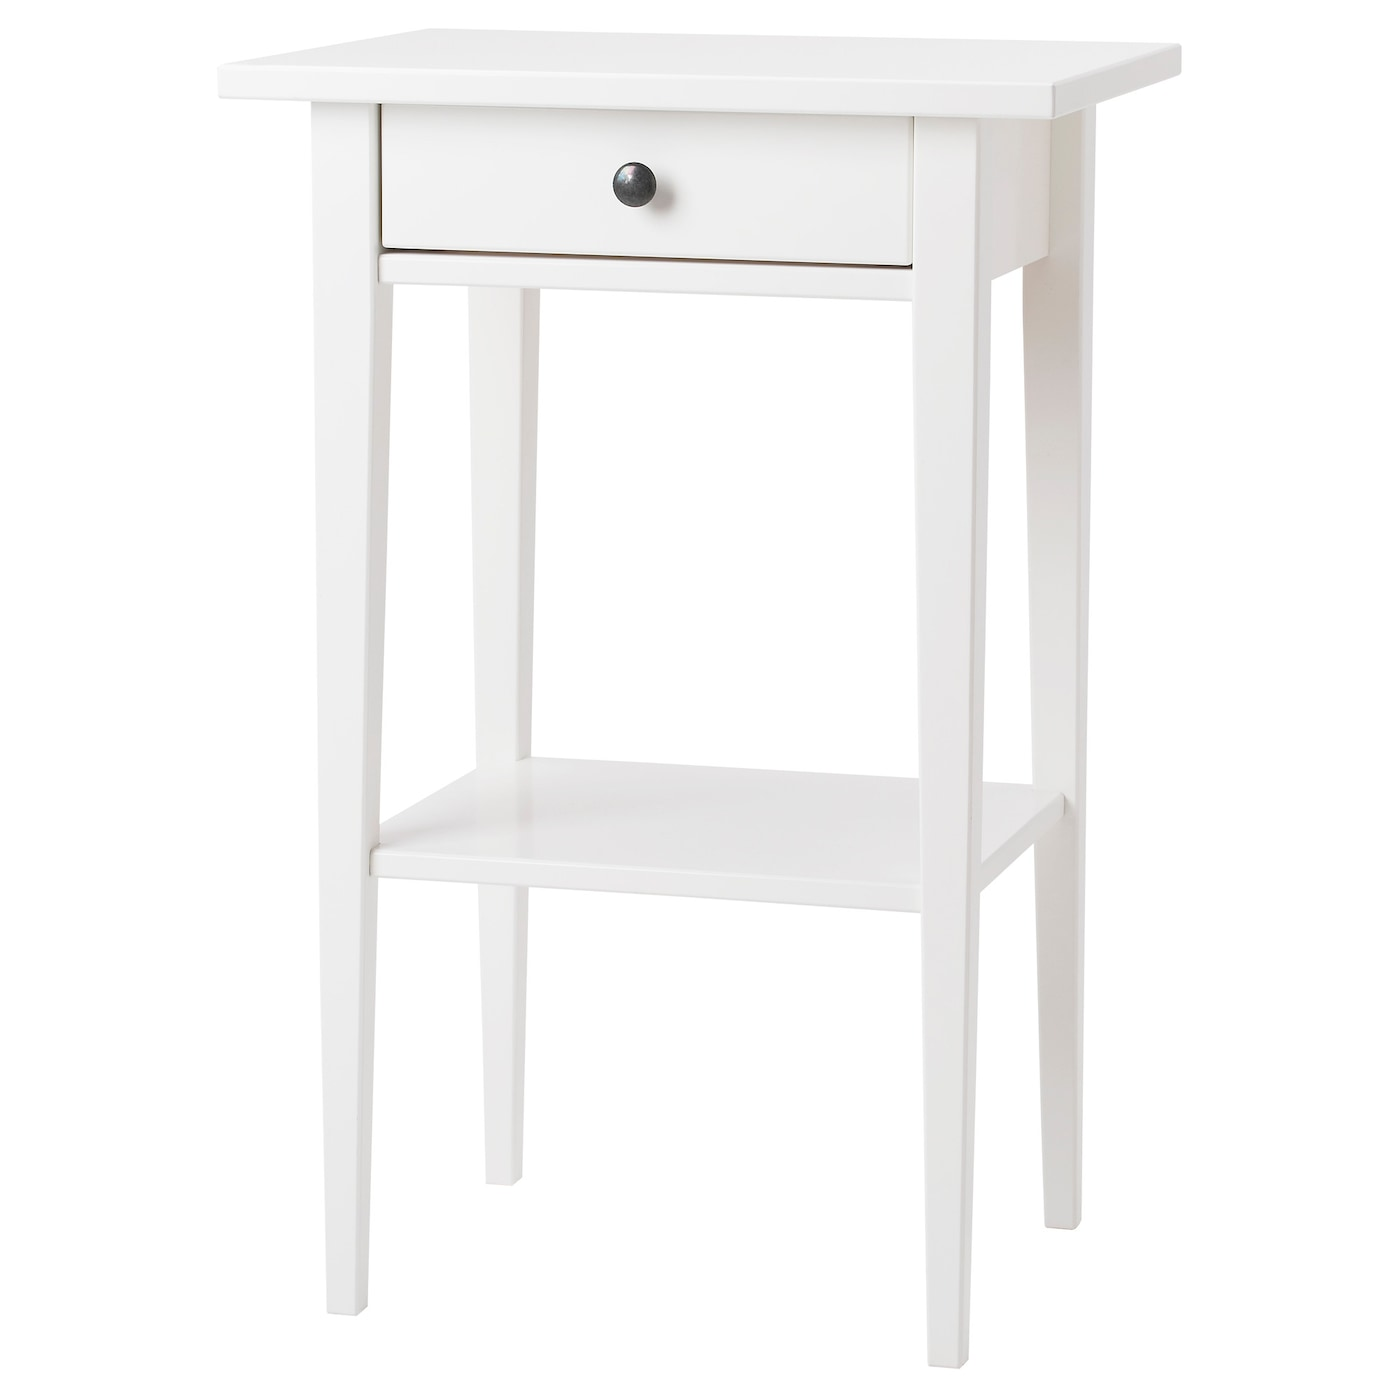 Ikea Hemnes Bedside Table Smooth Running Drawer With Pull Out Stop